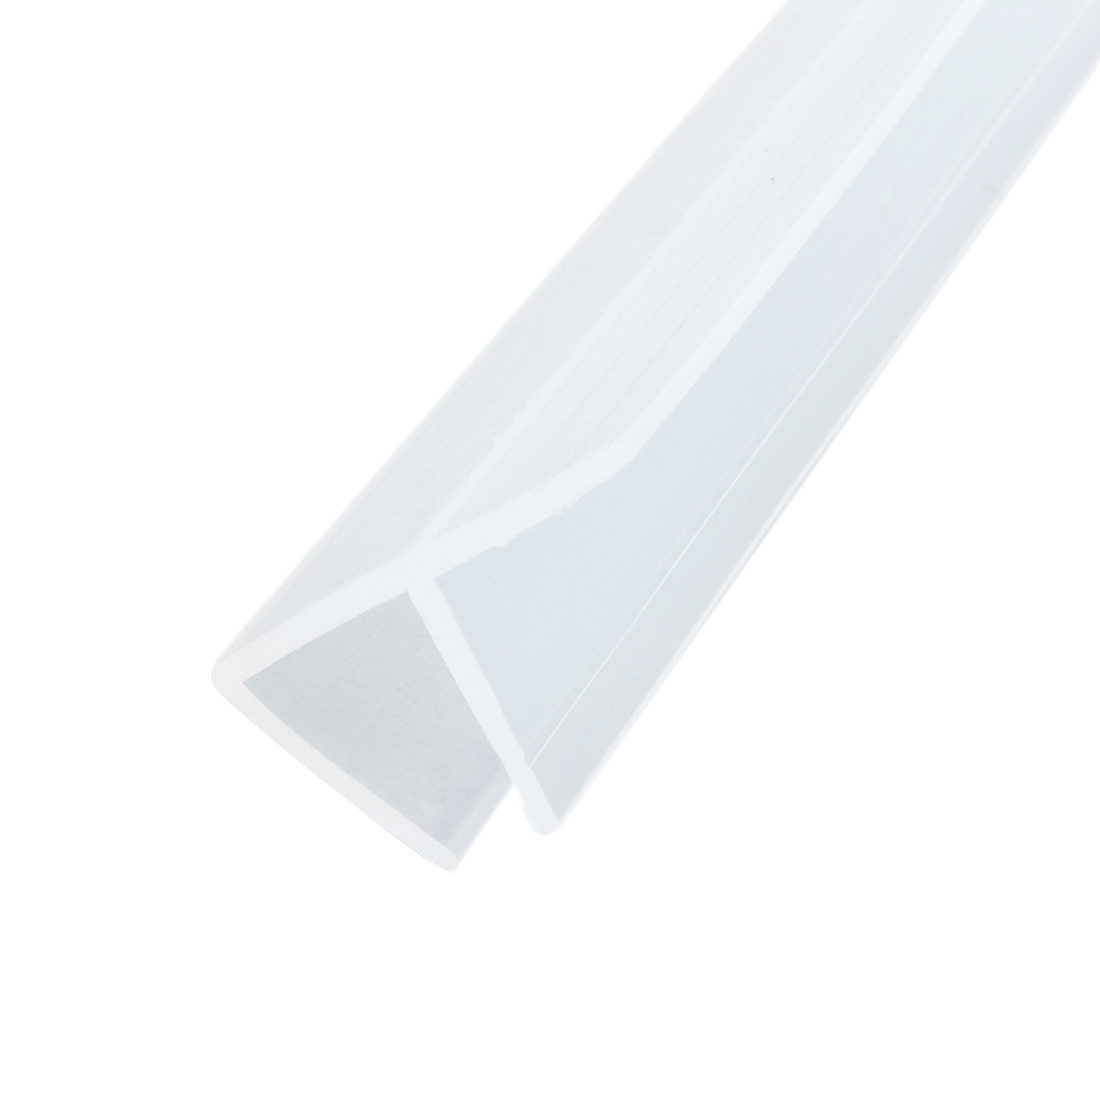 39-inch F Shaped Frameless Window Shower Door Seal Clear for 1/4-inch Glass